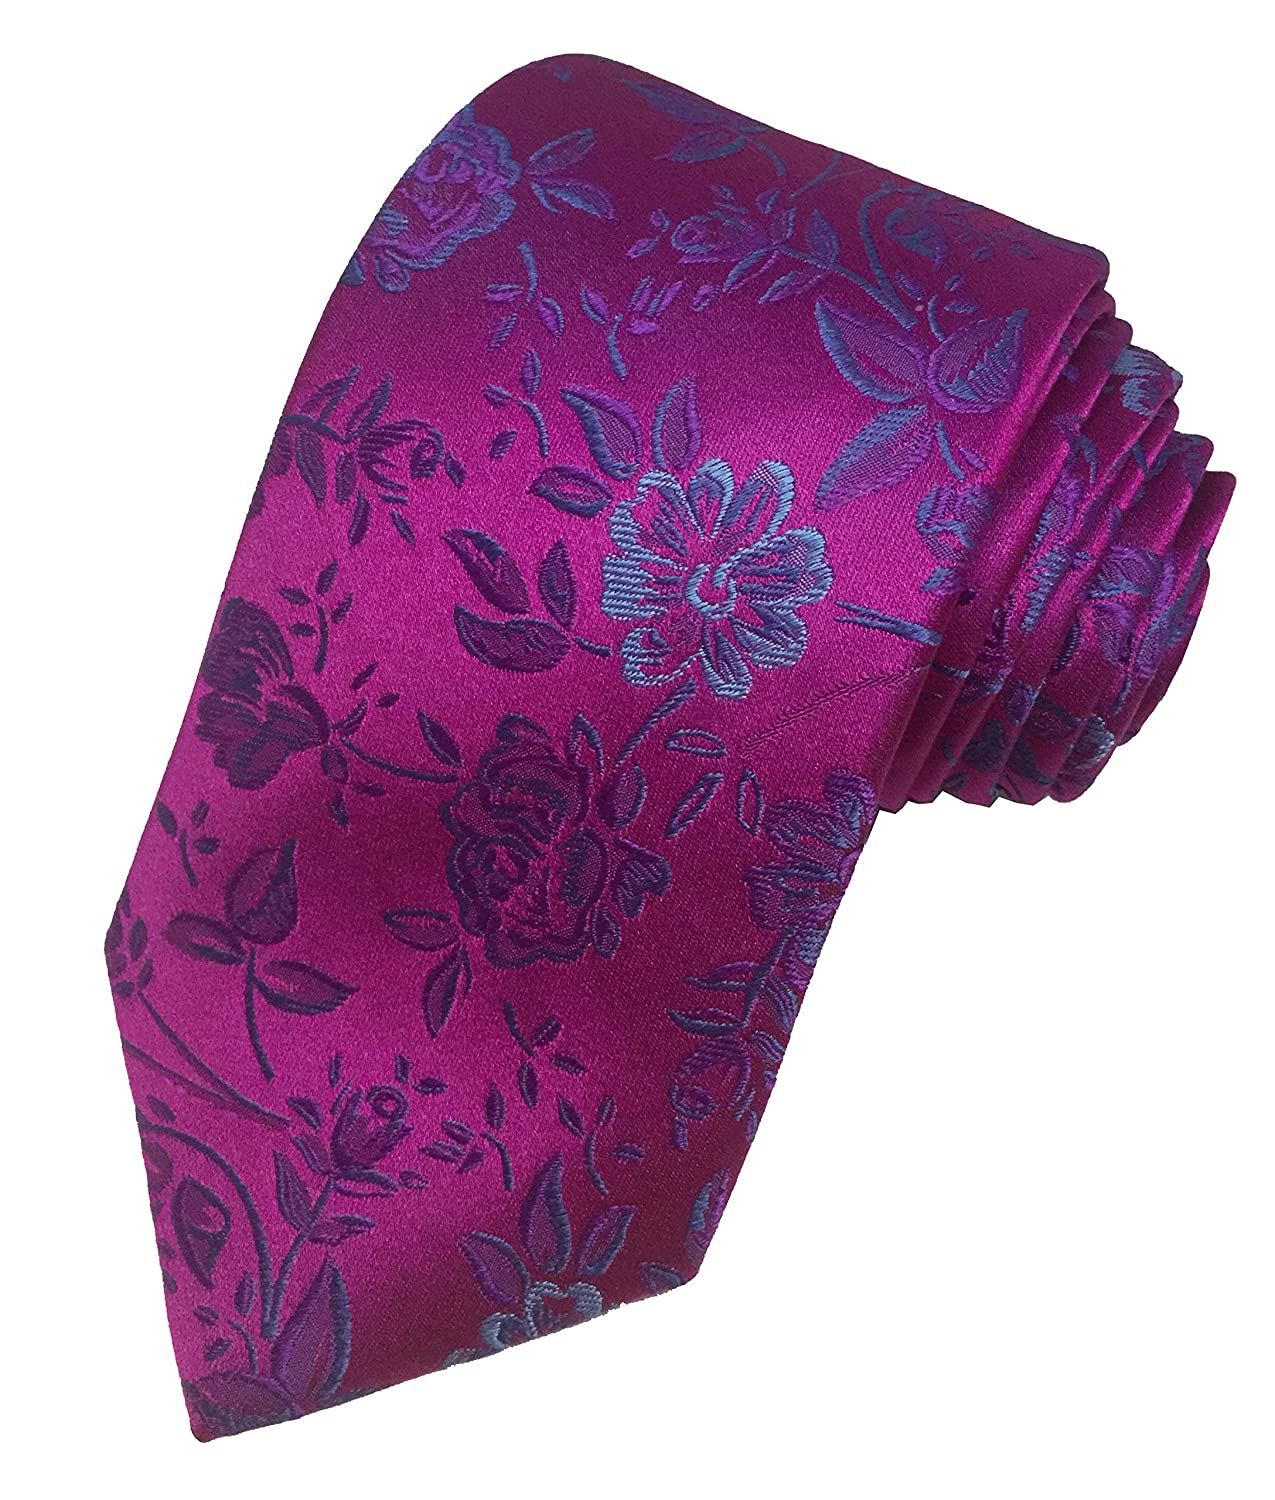 91c394e04 TED BAKER London Mens 100% Woven Silk Neck Tie Necktie Hot Pink Purple Blue  Floral  Amazon.co.uk  Clothing